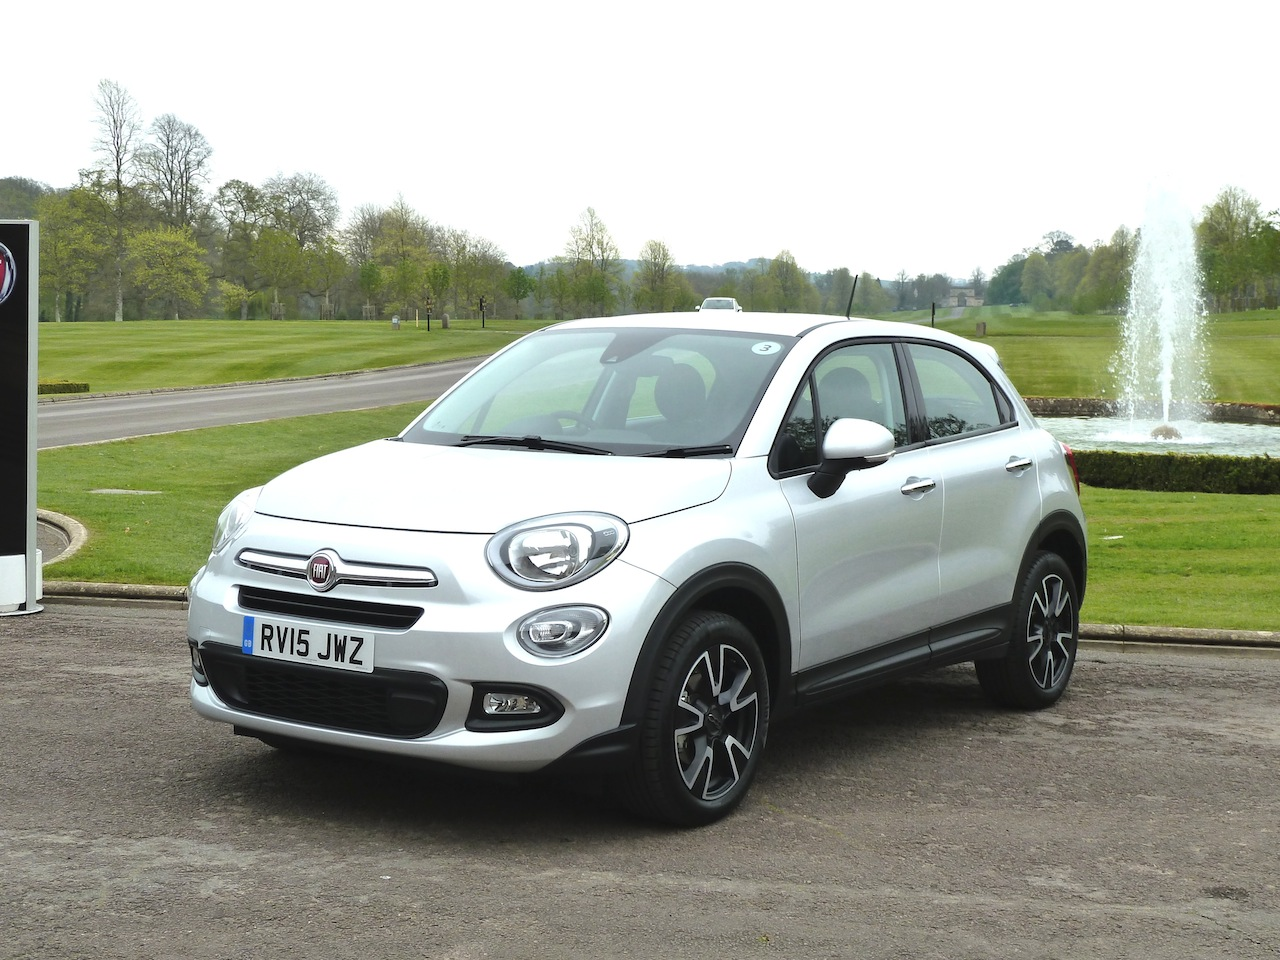 The Fiat 500X Pop Star 1.6 Multijet Diesel test-driven by Kim for Wheels-Alive